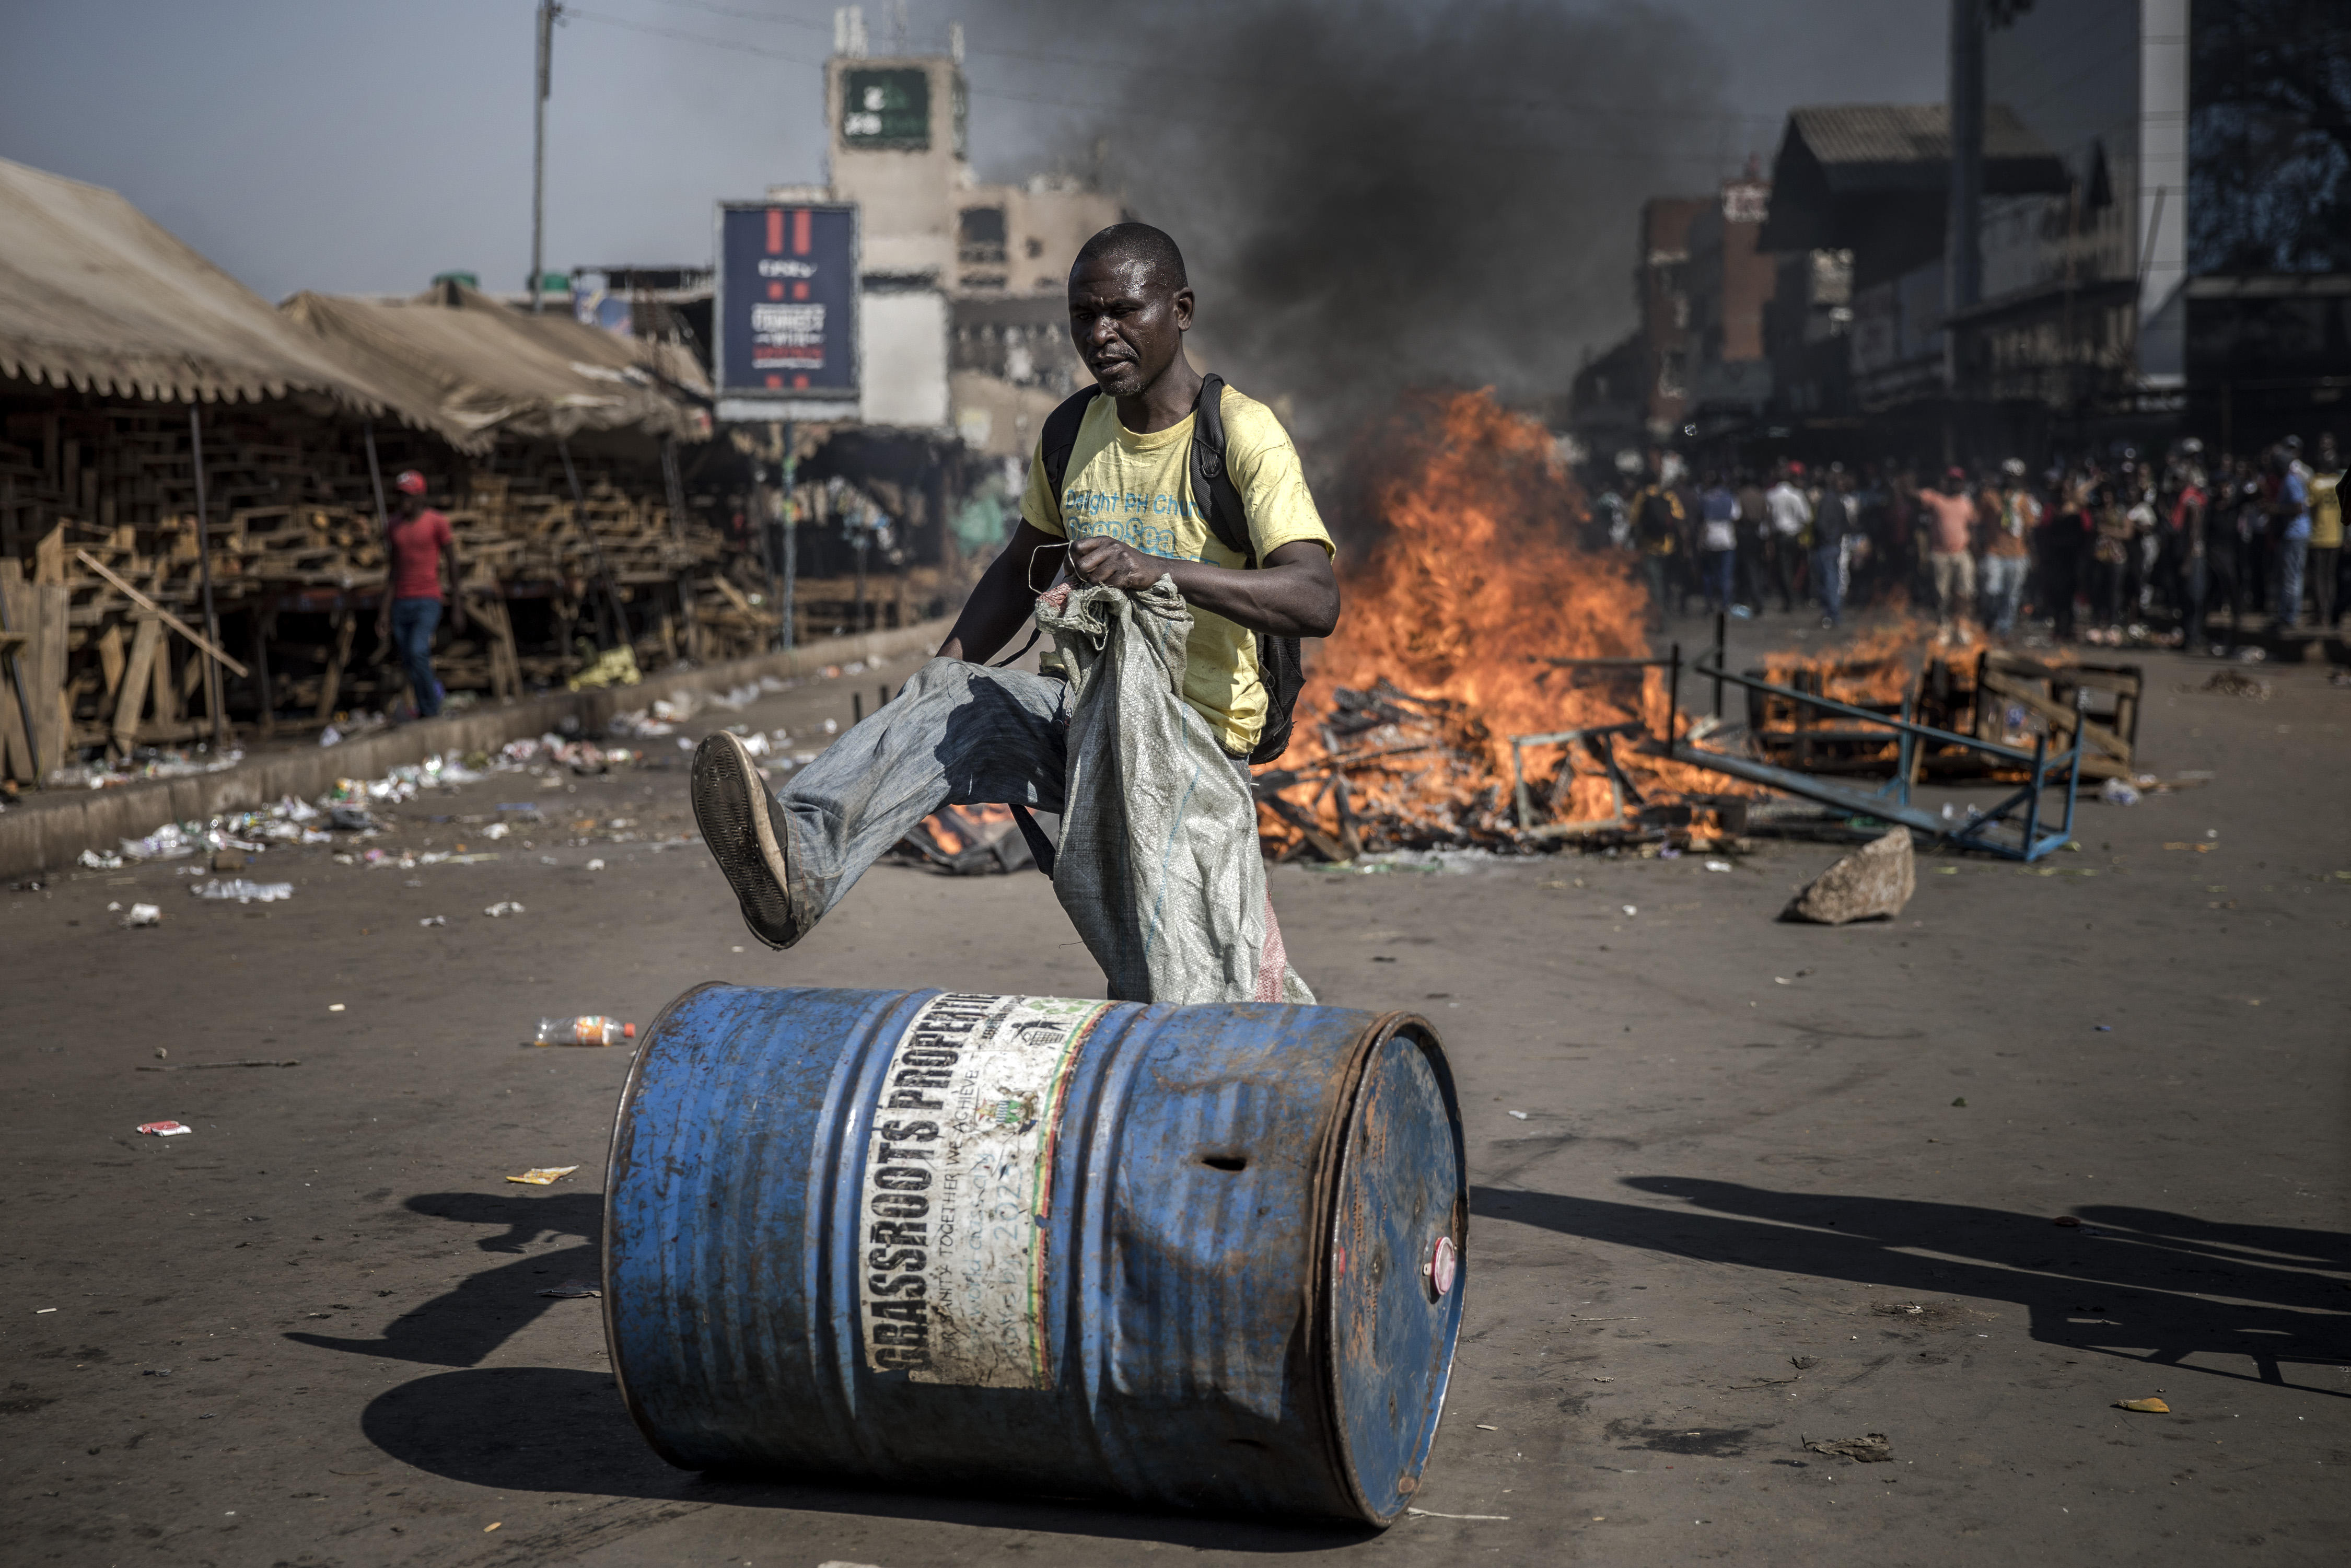 A man walks over a barrel in front of a fire in Harare on August 1, 2018, as protests erupted over alleged fraud in Zimbabwe's election.